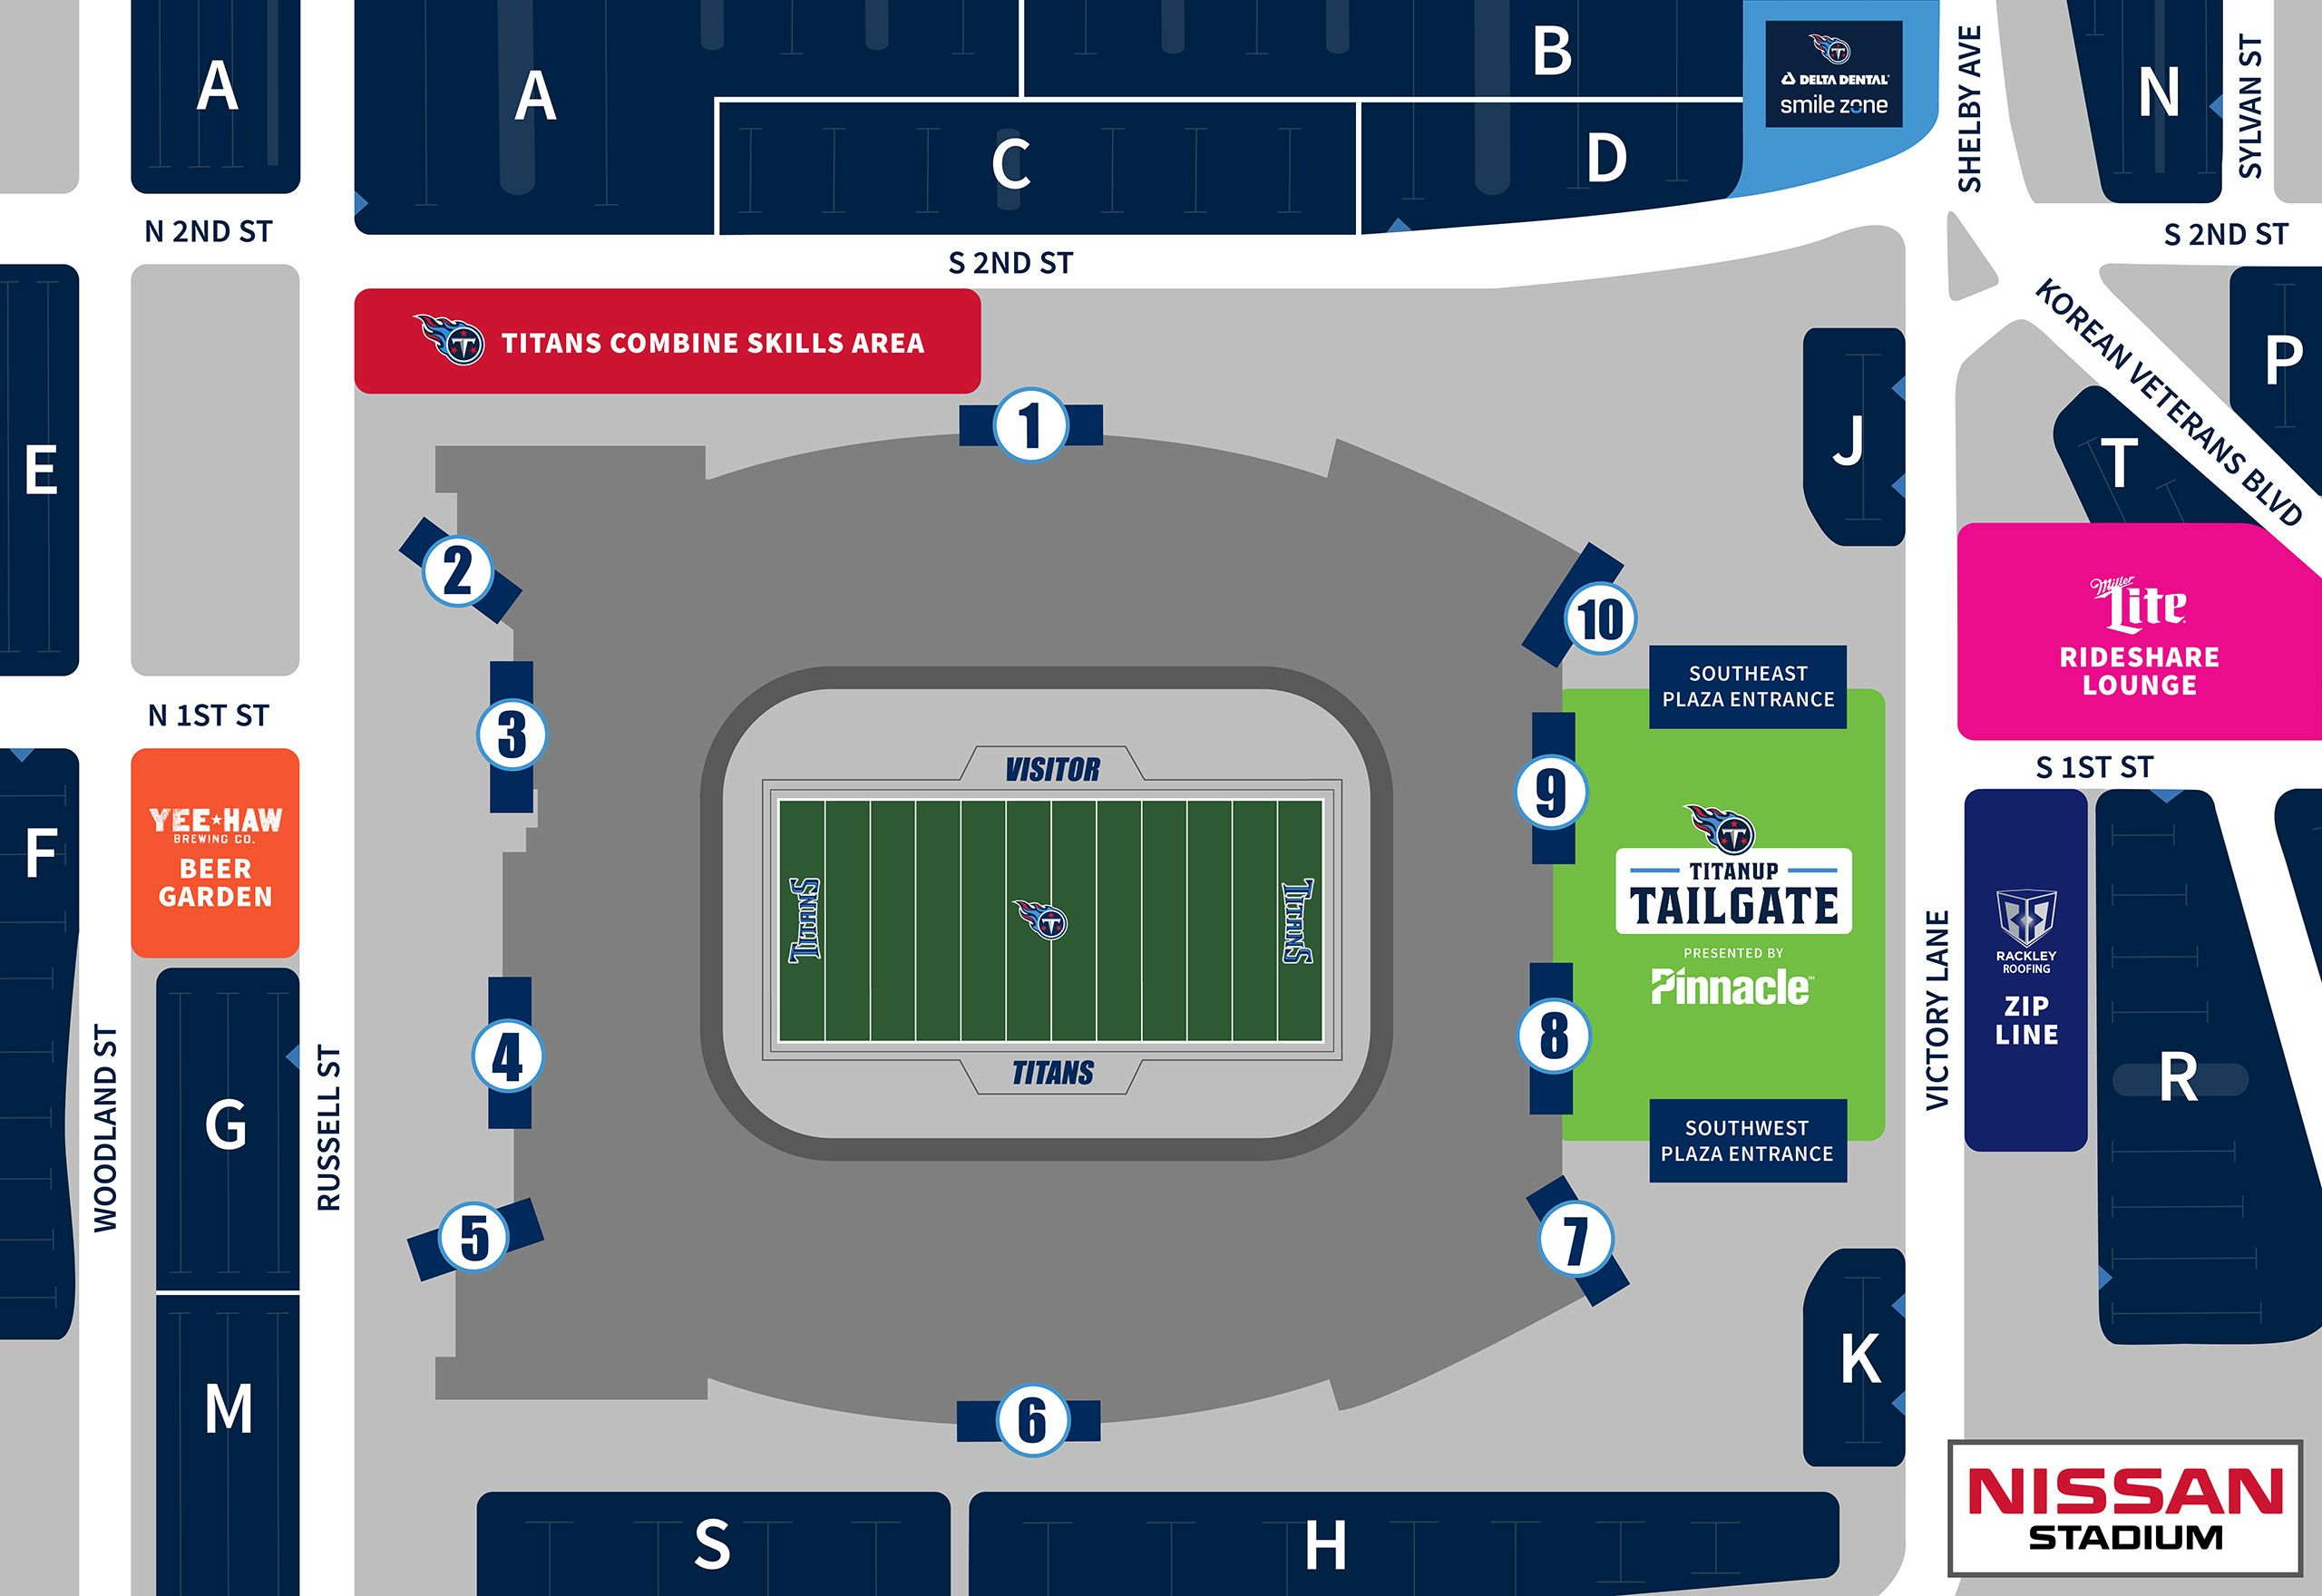 TitanUp Tailgate, Presented by Pinnacle